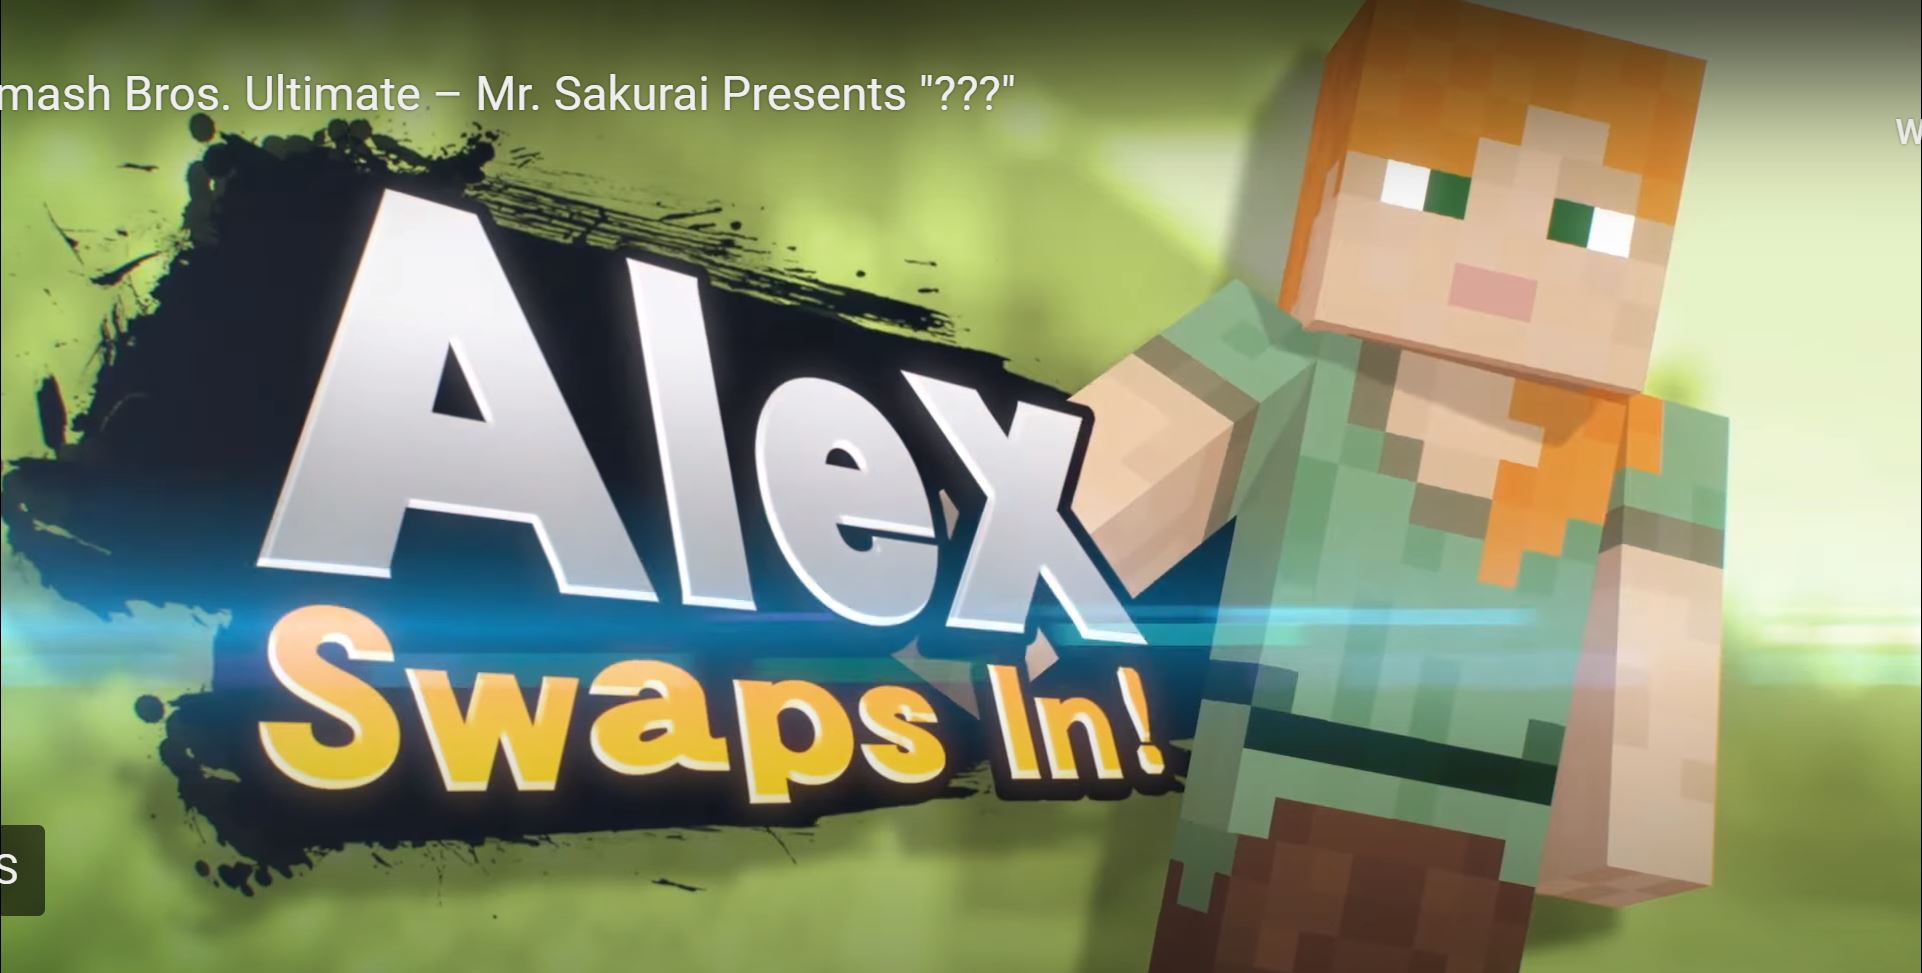 Minecraft Characters, Steve, Alex, Zombie and Enderman, Will Be Part Of Super Smash Bros Ultimate!